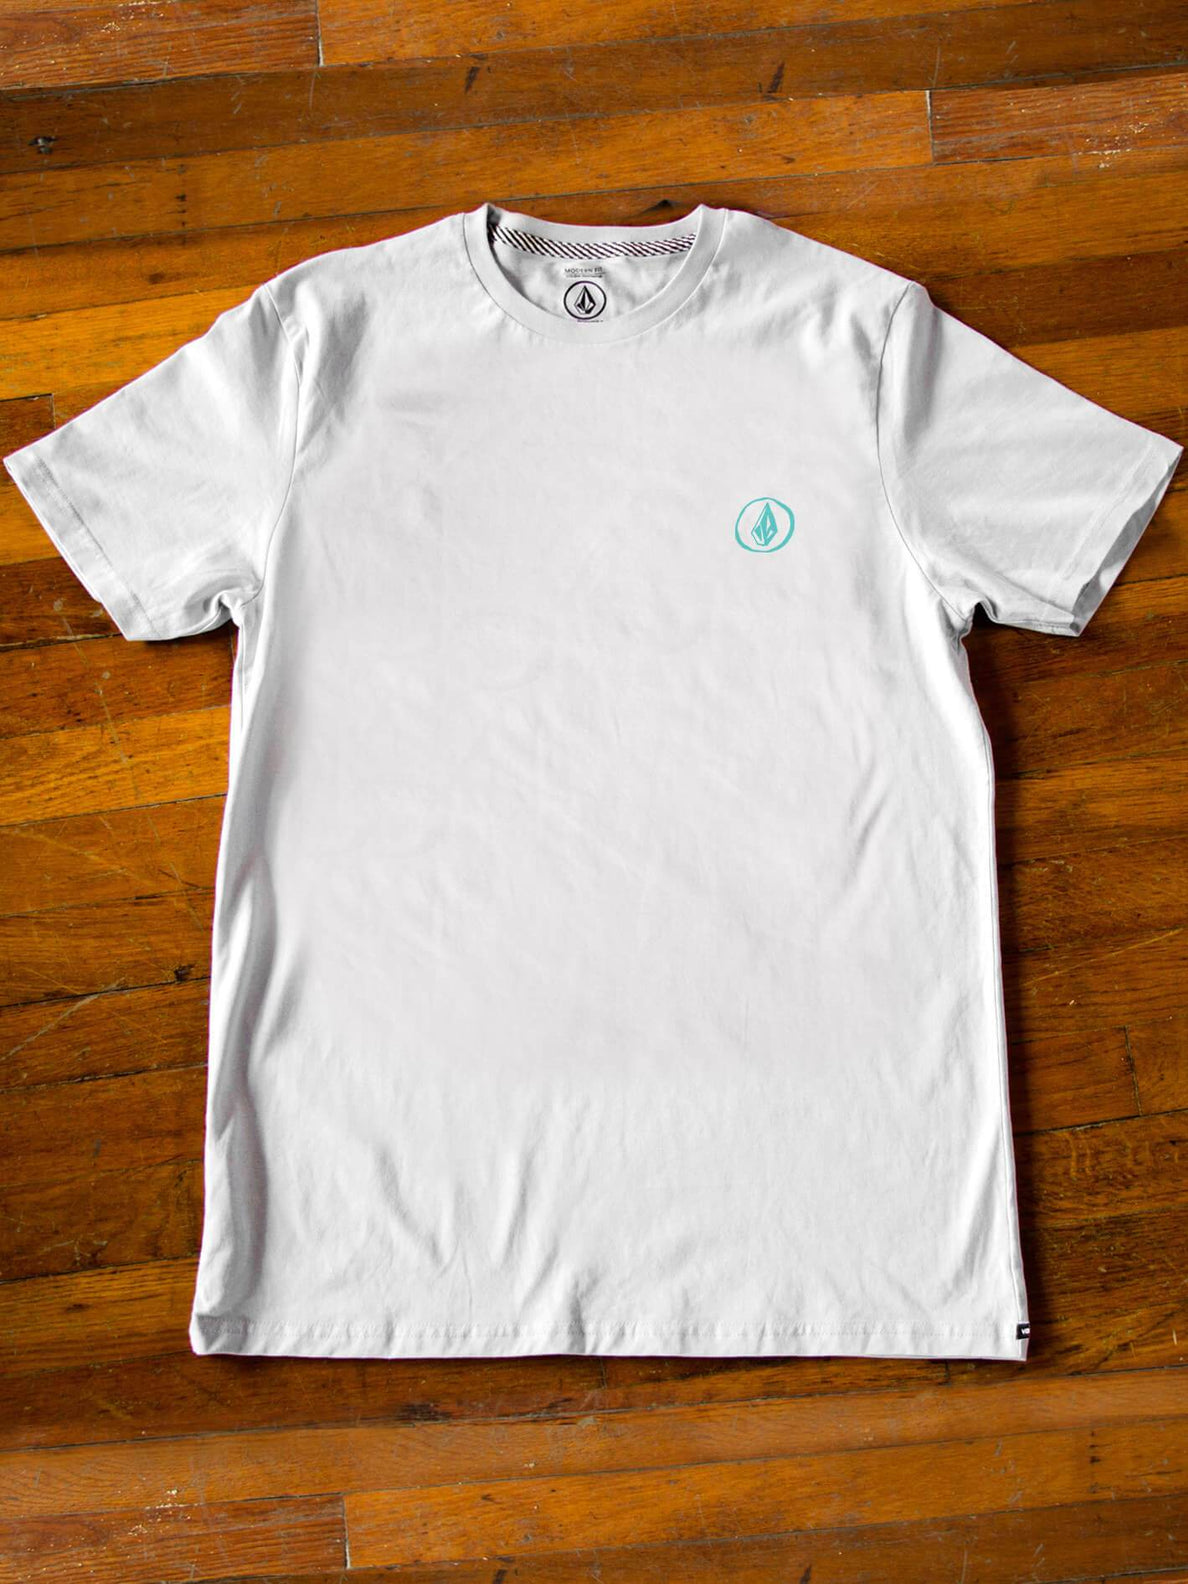 Tim Kerr Volcom Garden Artist Series Tee In White, Front View